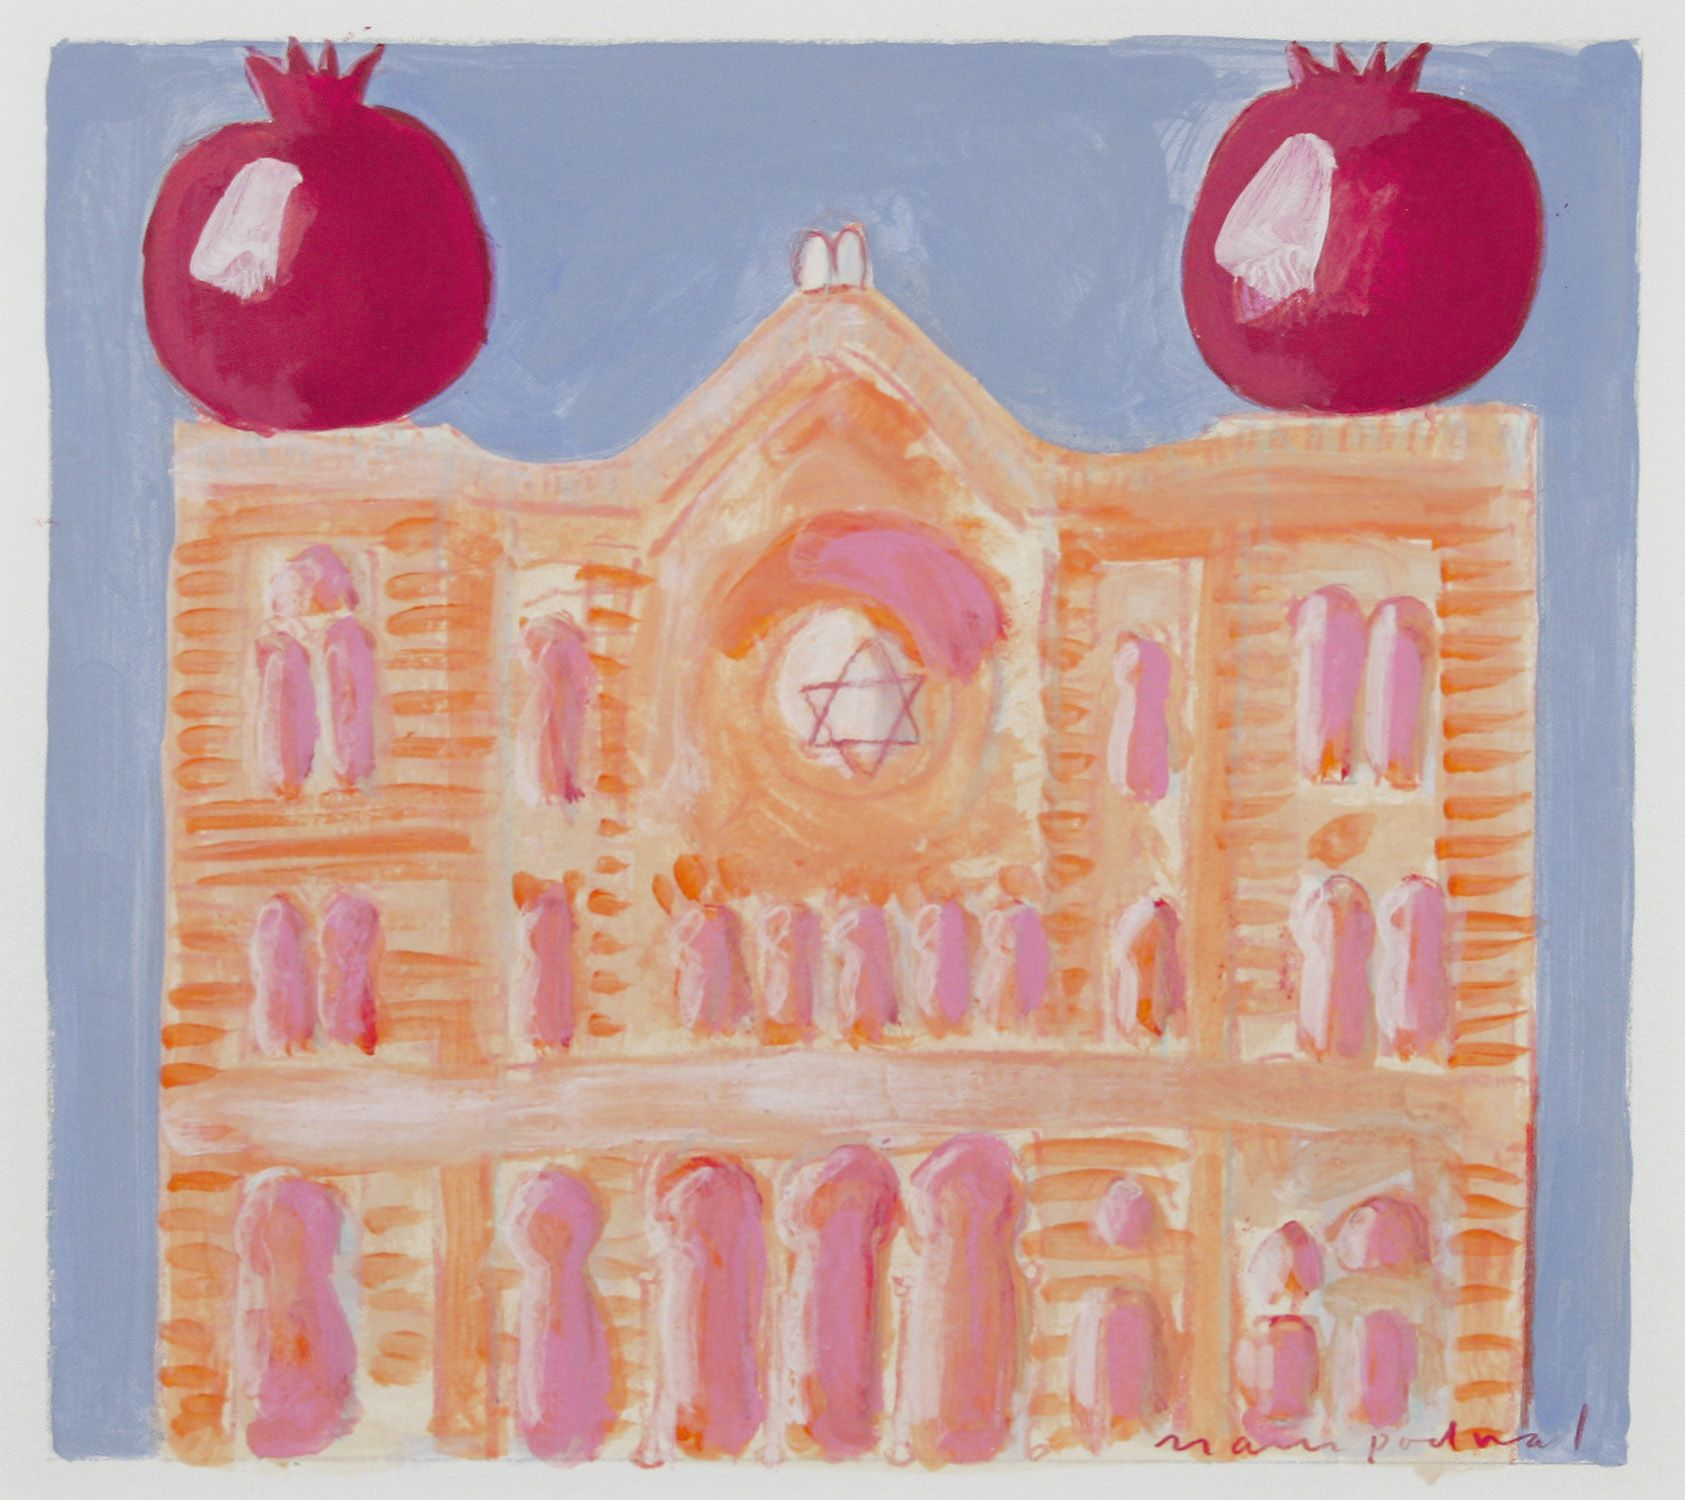 Mark Podwal, Jerusalem Synagogue in Prague, 2001, acrylic, gouache and colored pencil on paper, 7 x 8 inches